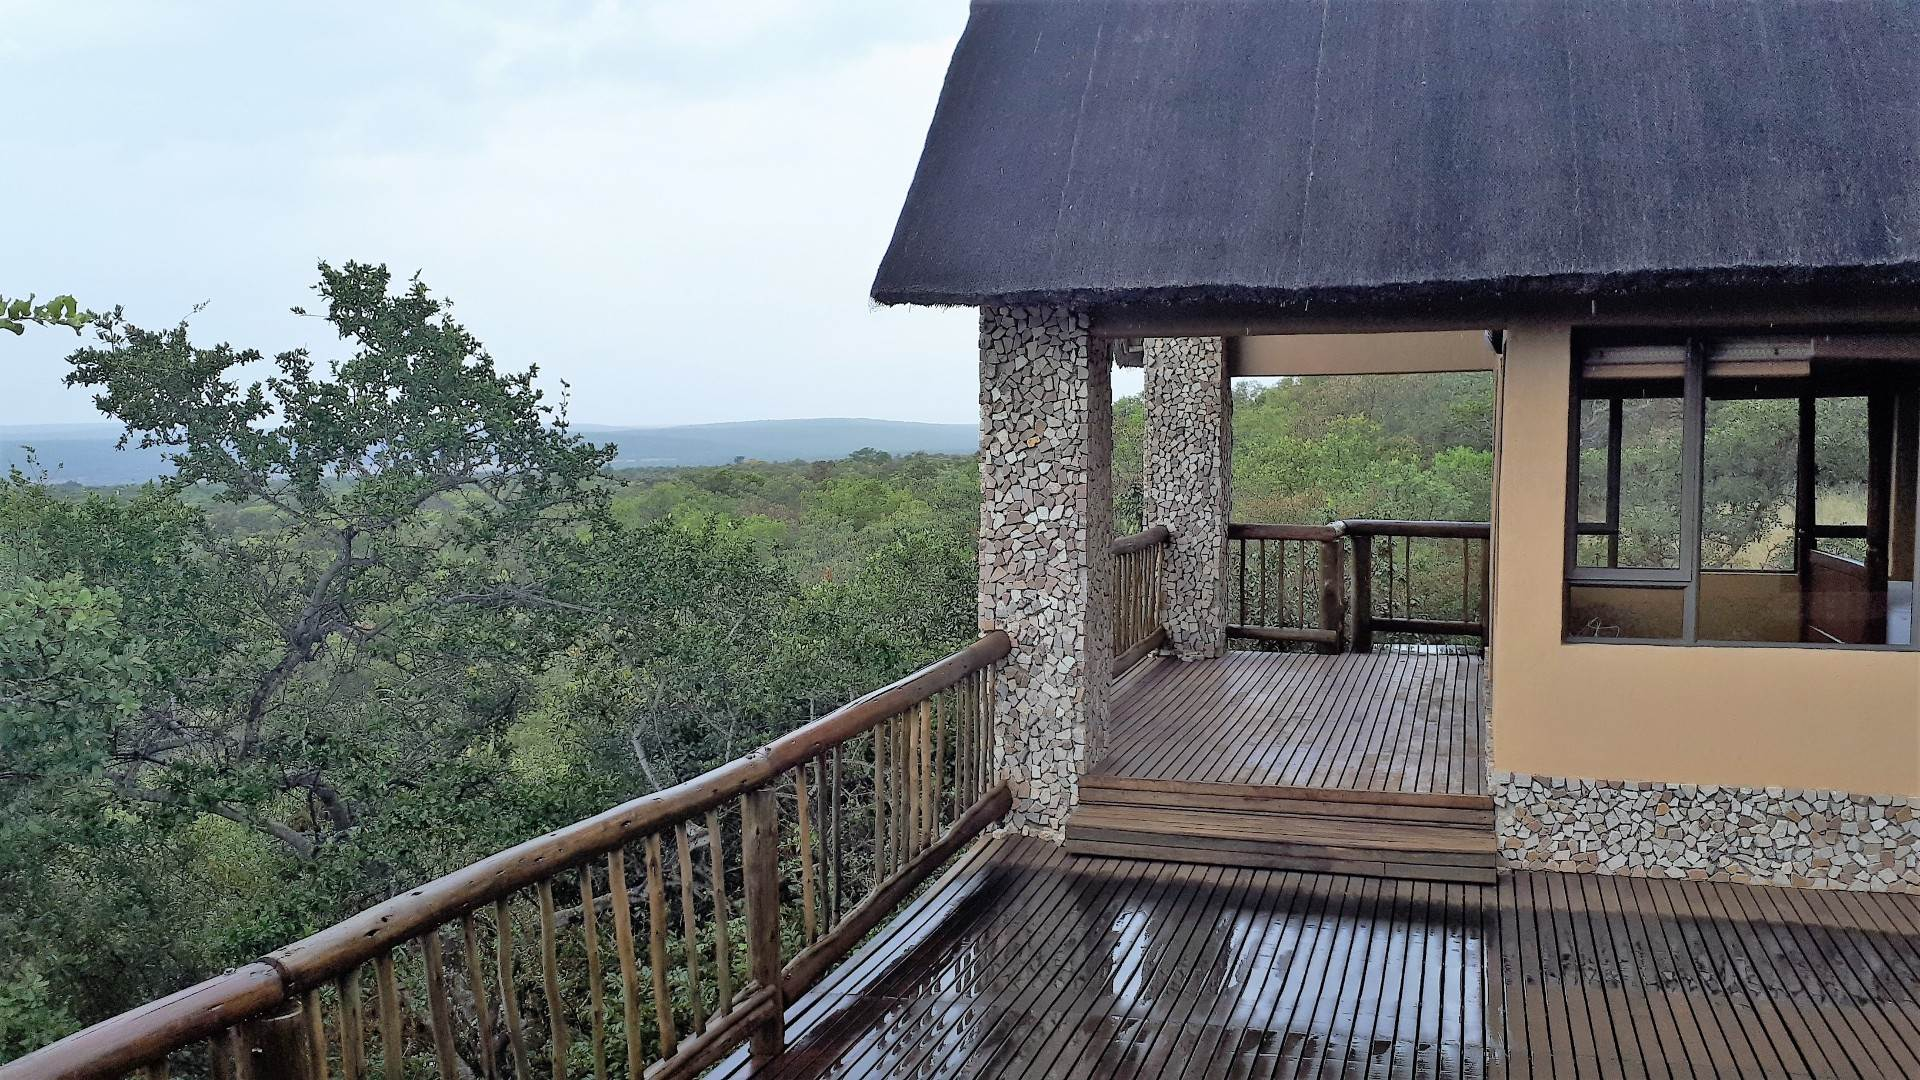 4 BedroomHouse For Sale In Vaalwater